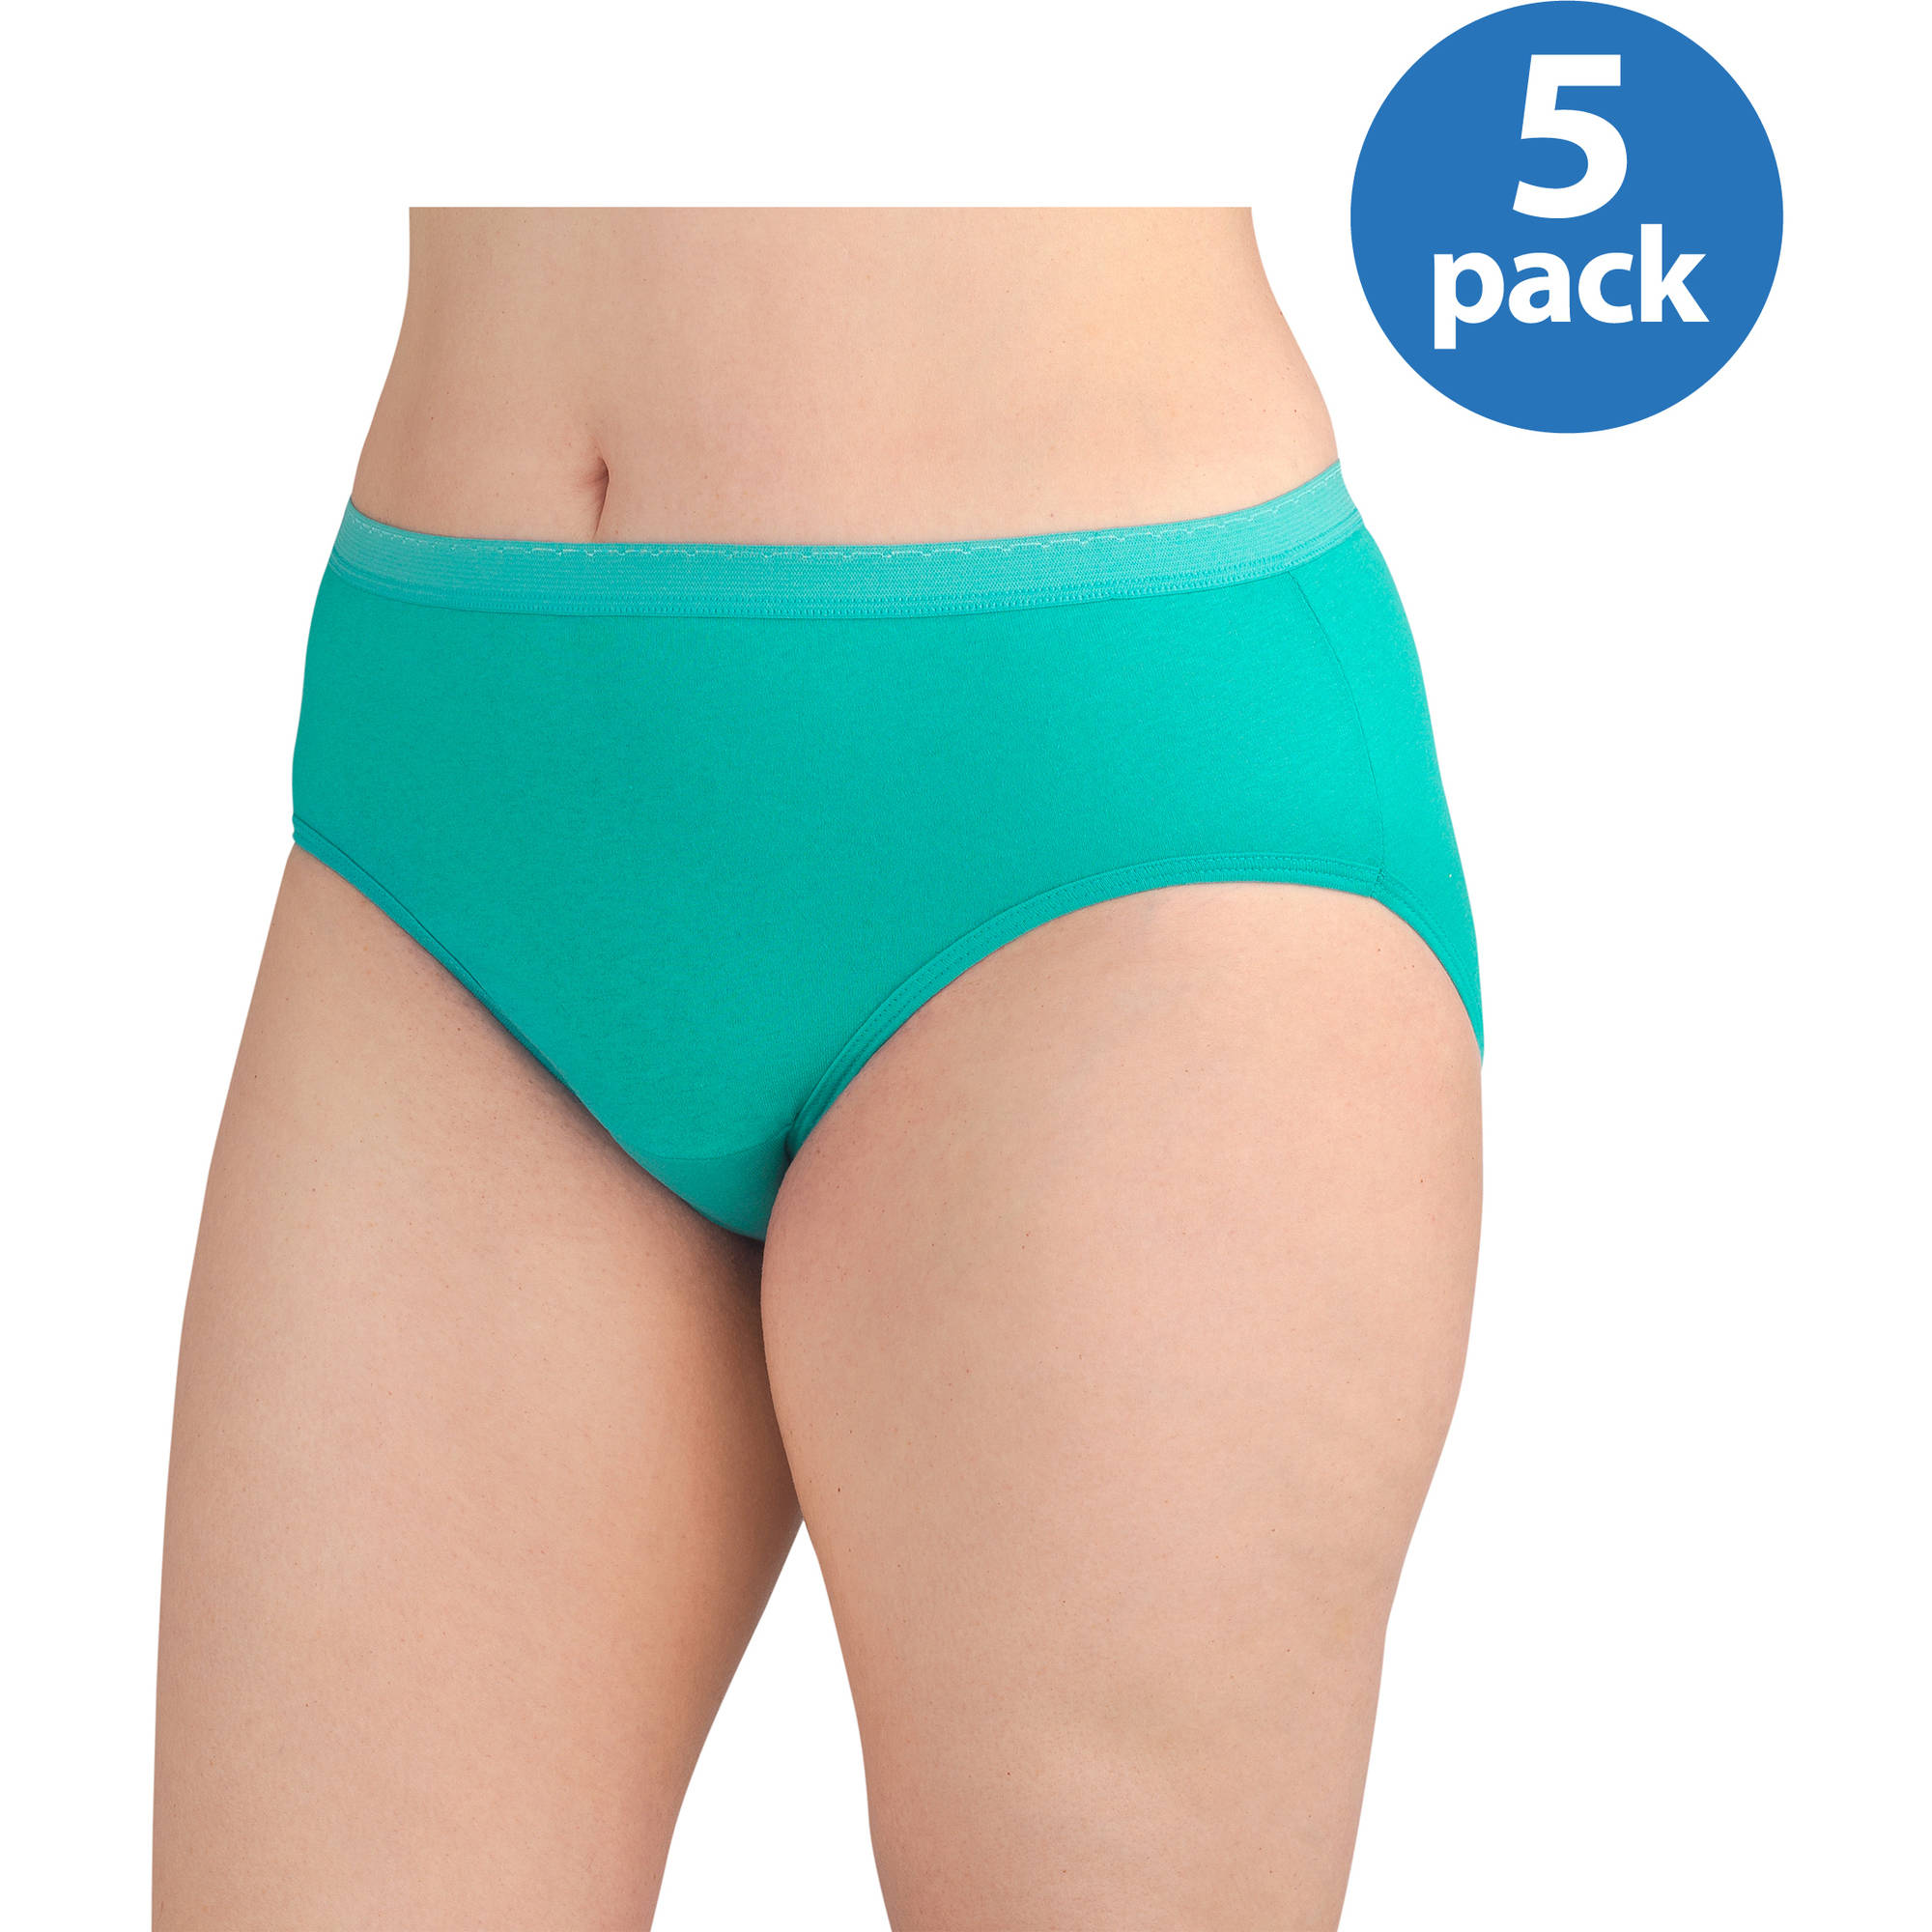 Fit for Me by Fruit of the Loom Women's Hipster, 5 Pack Plus Size Panties